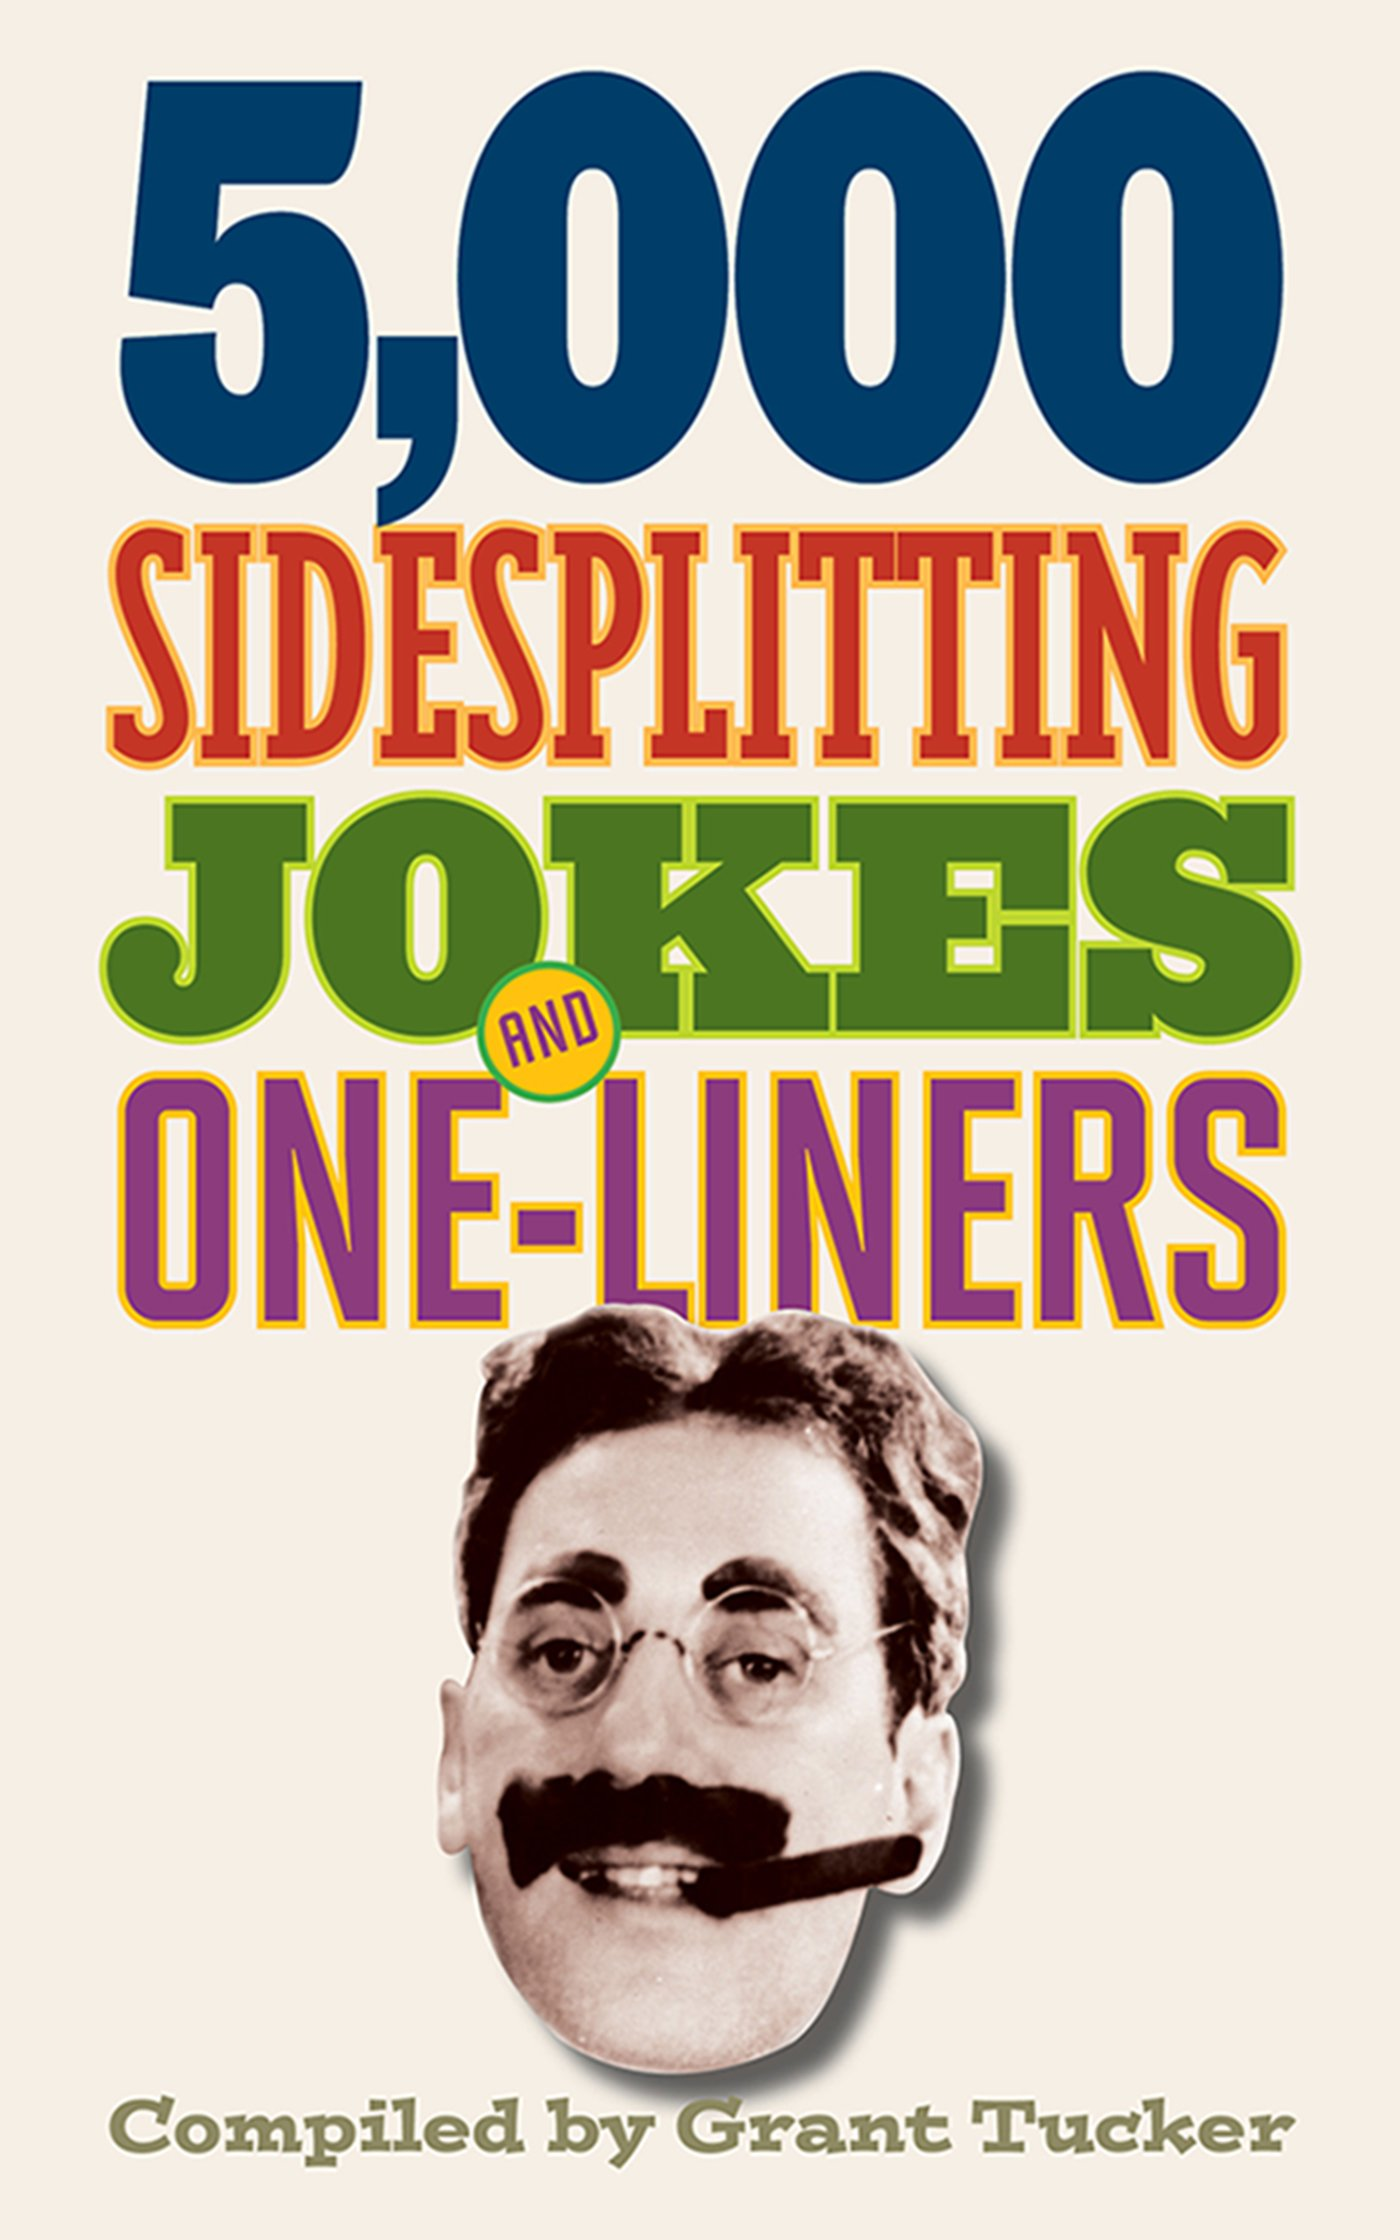 5,000 Sidesplitting Jokes and One-Liners by Skyhorse Publishing